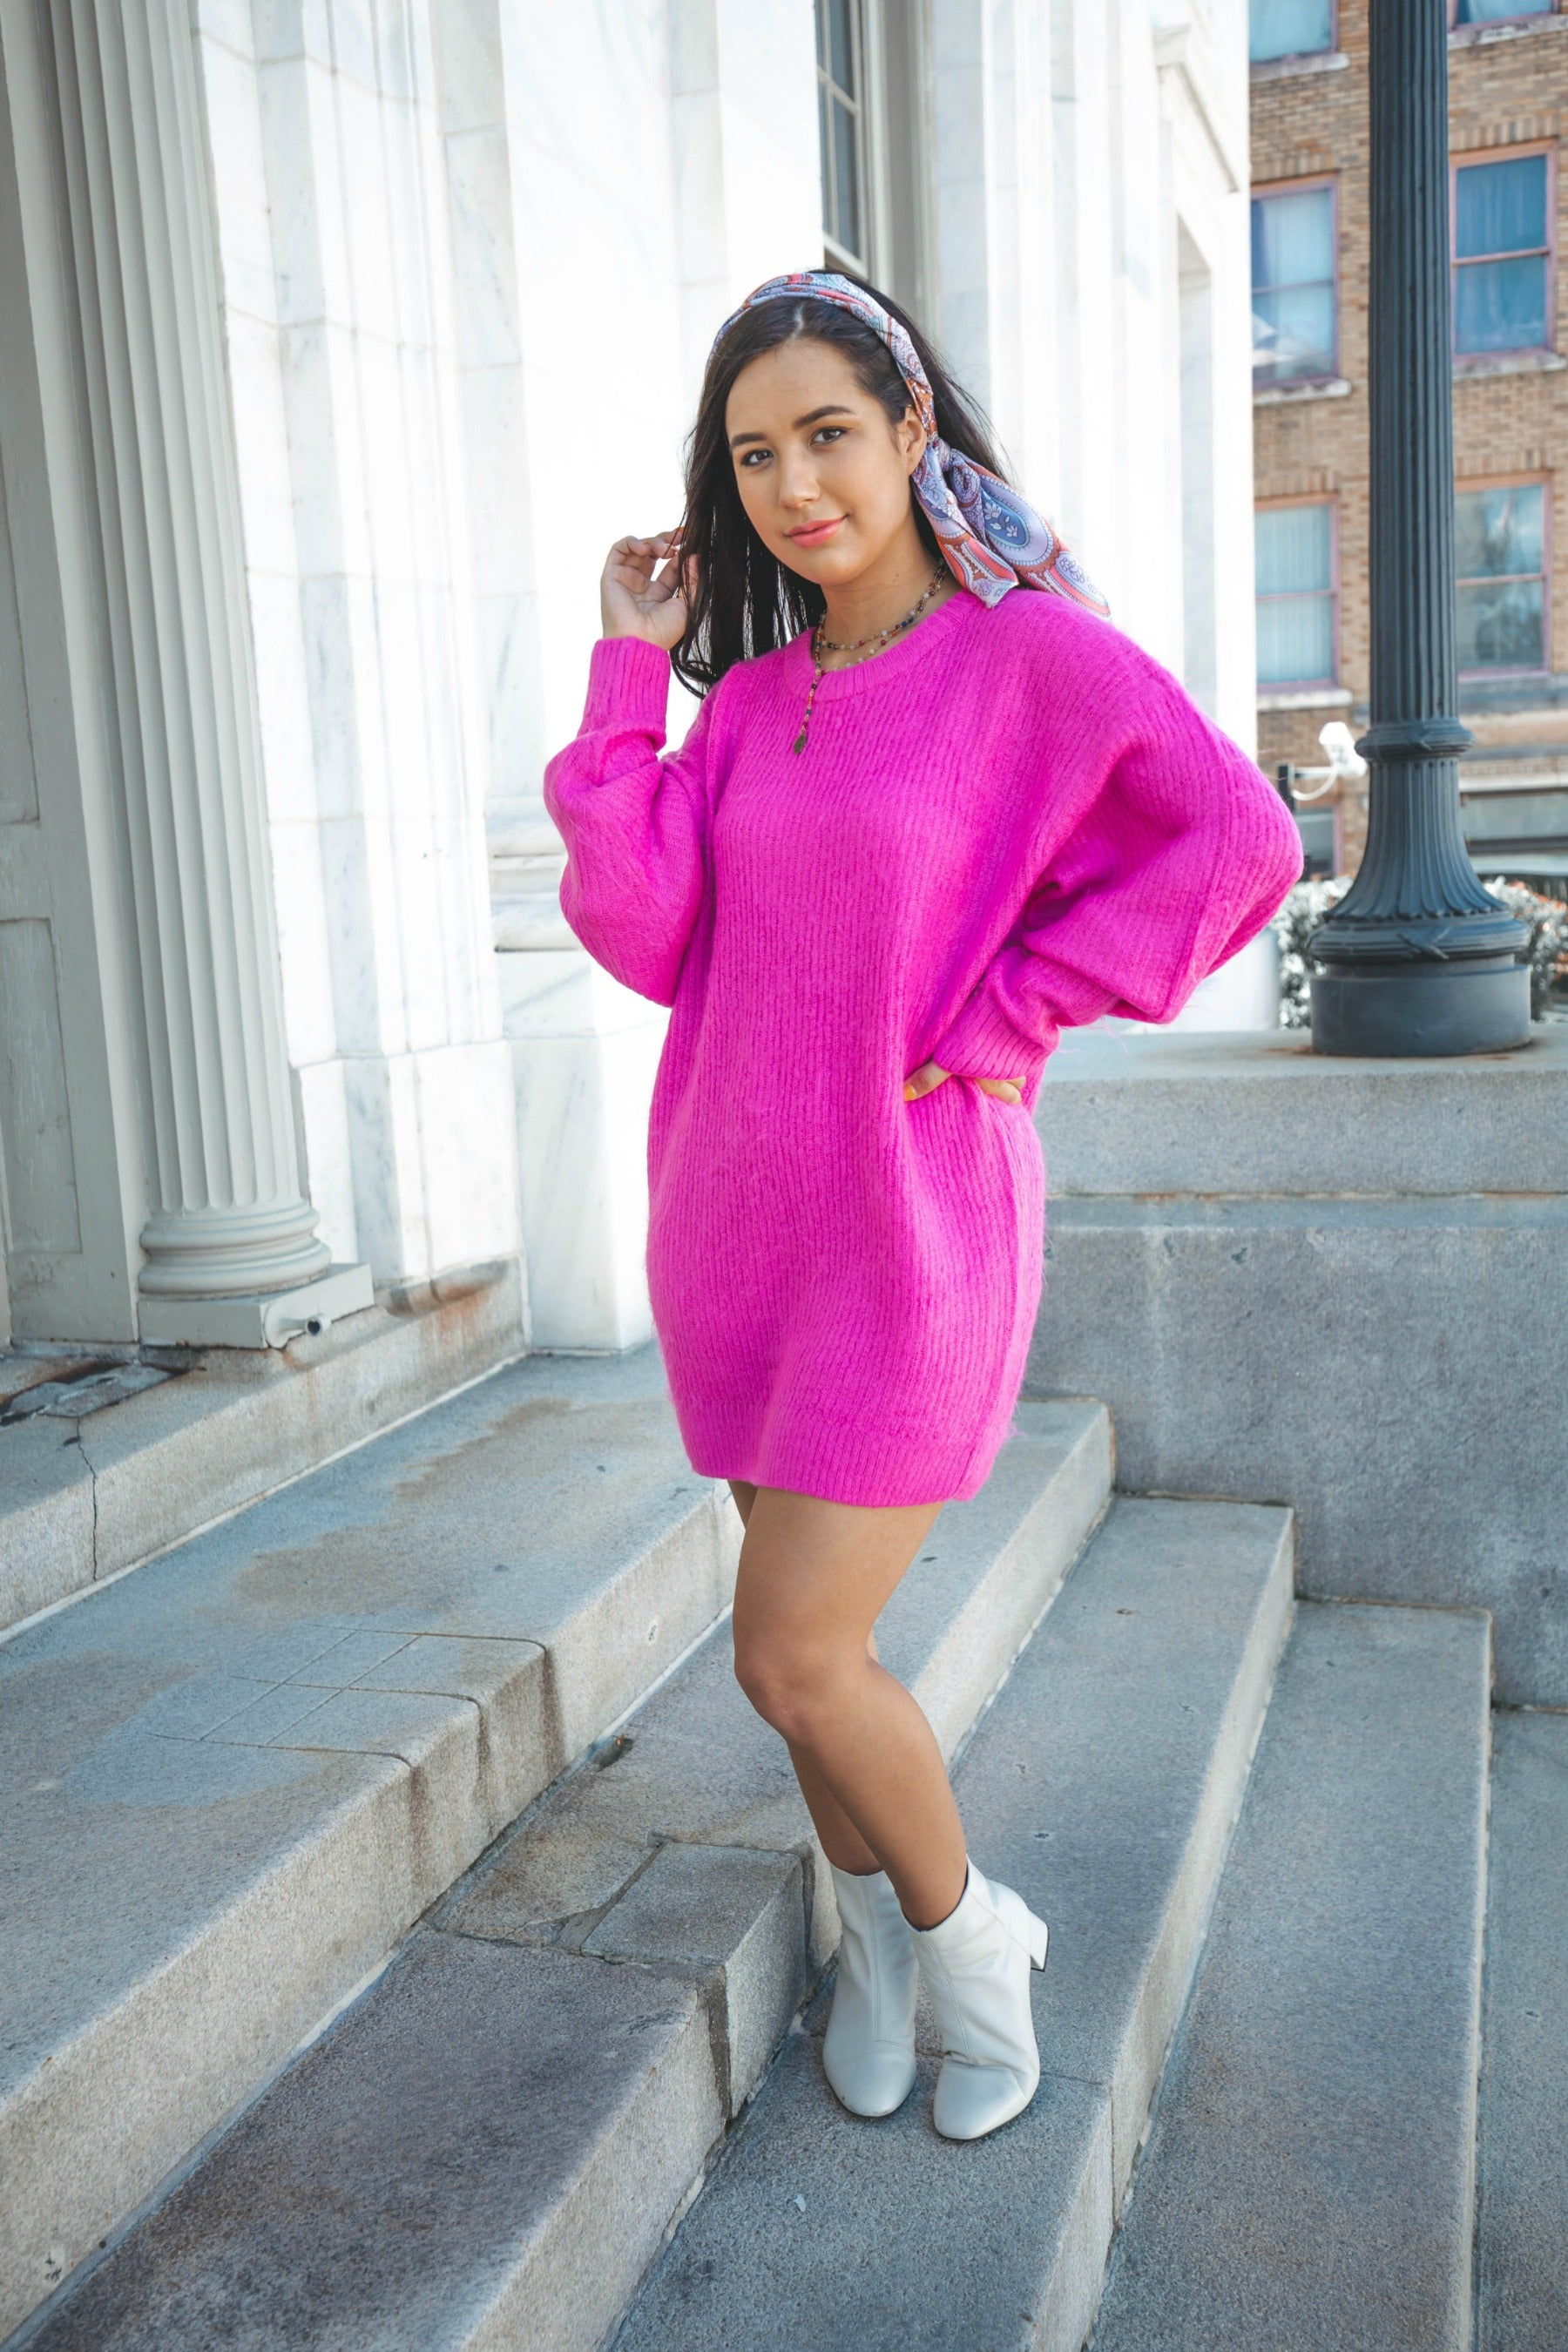 Barbie Girl Hot Pink Sweater Dress - The Flawless Babe Boutique